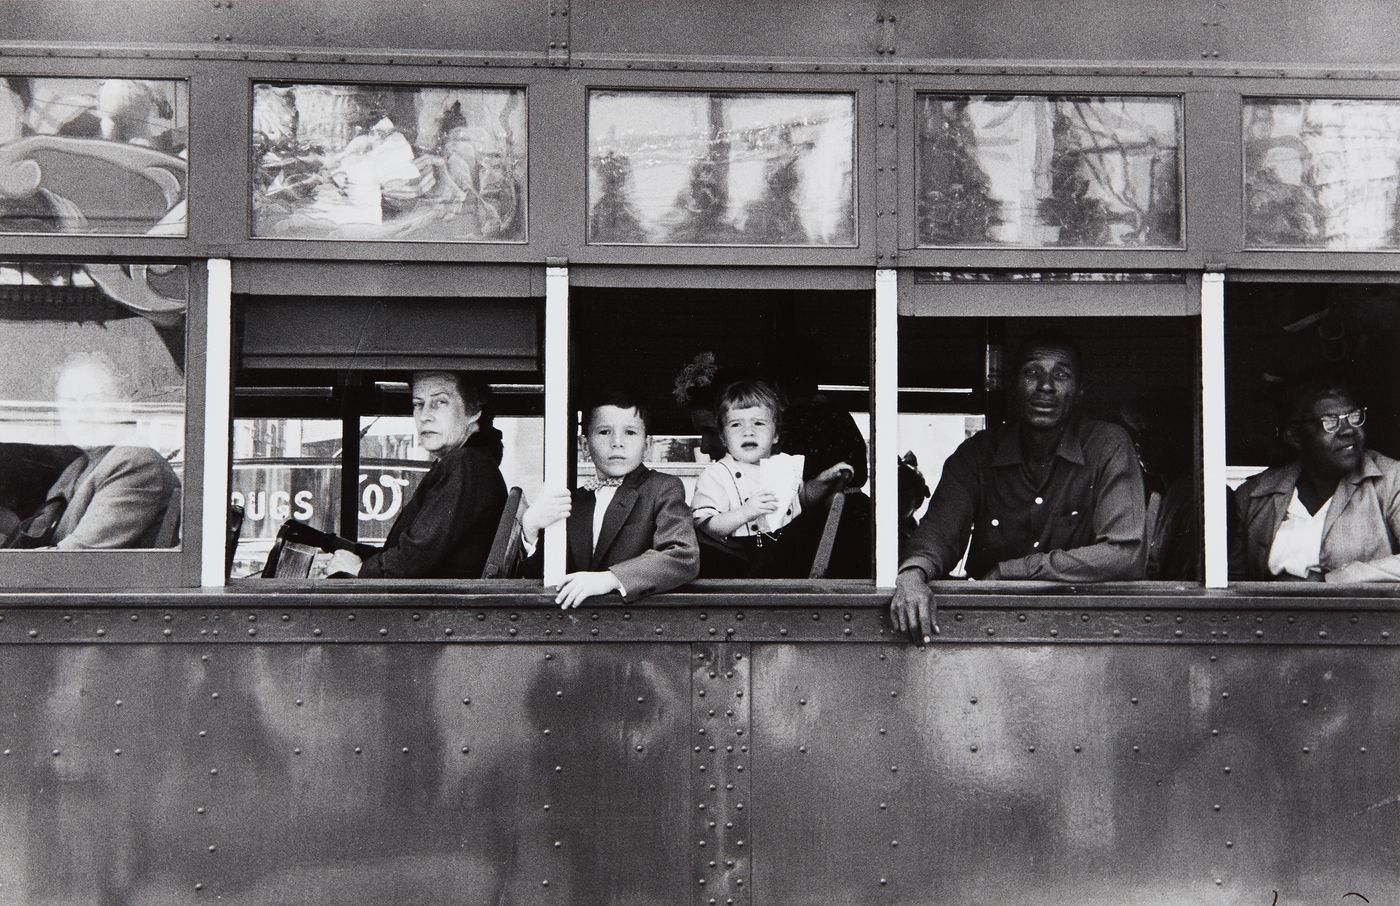 Three special prints on offer by Robert Frank who captured the 1950s American milieu in his famed book 'The Americans'